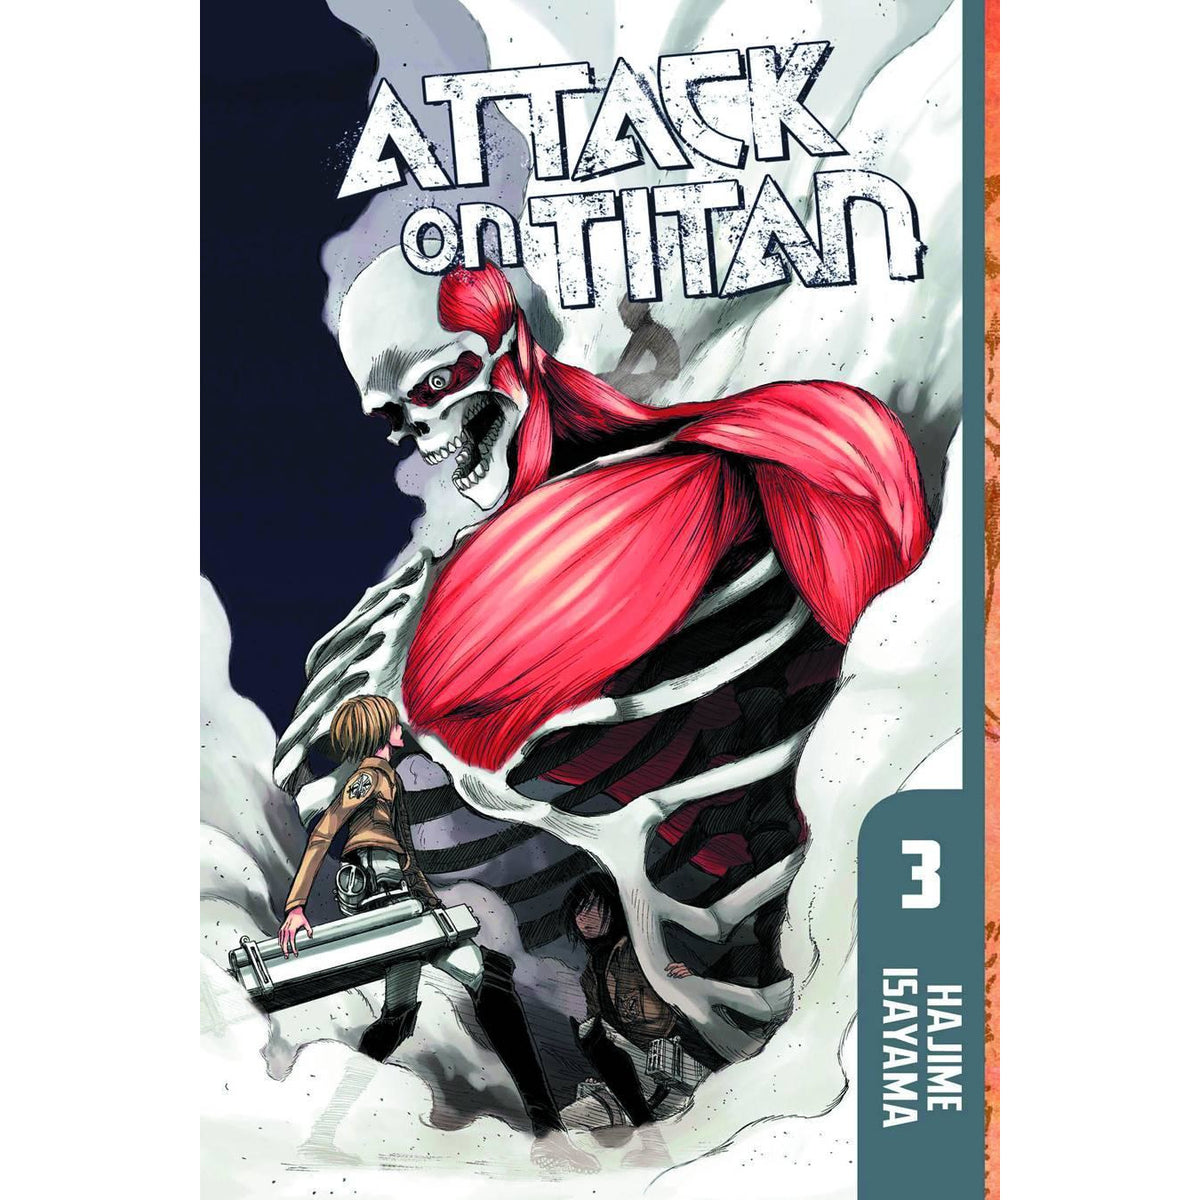 ATTACK ON TITAN VOLUME 03